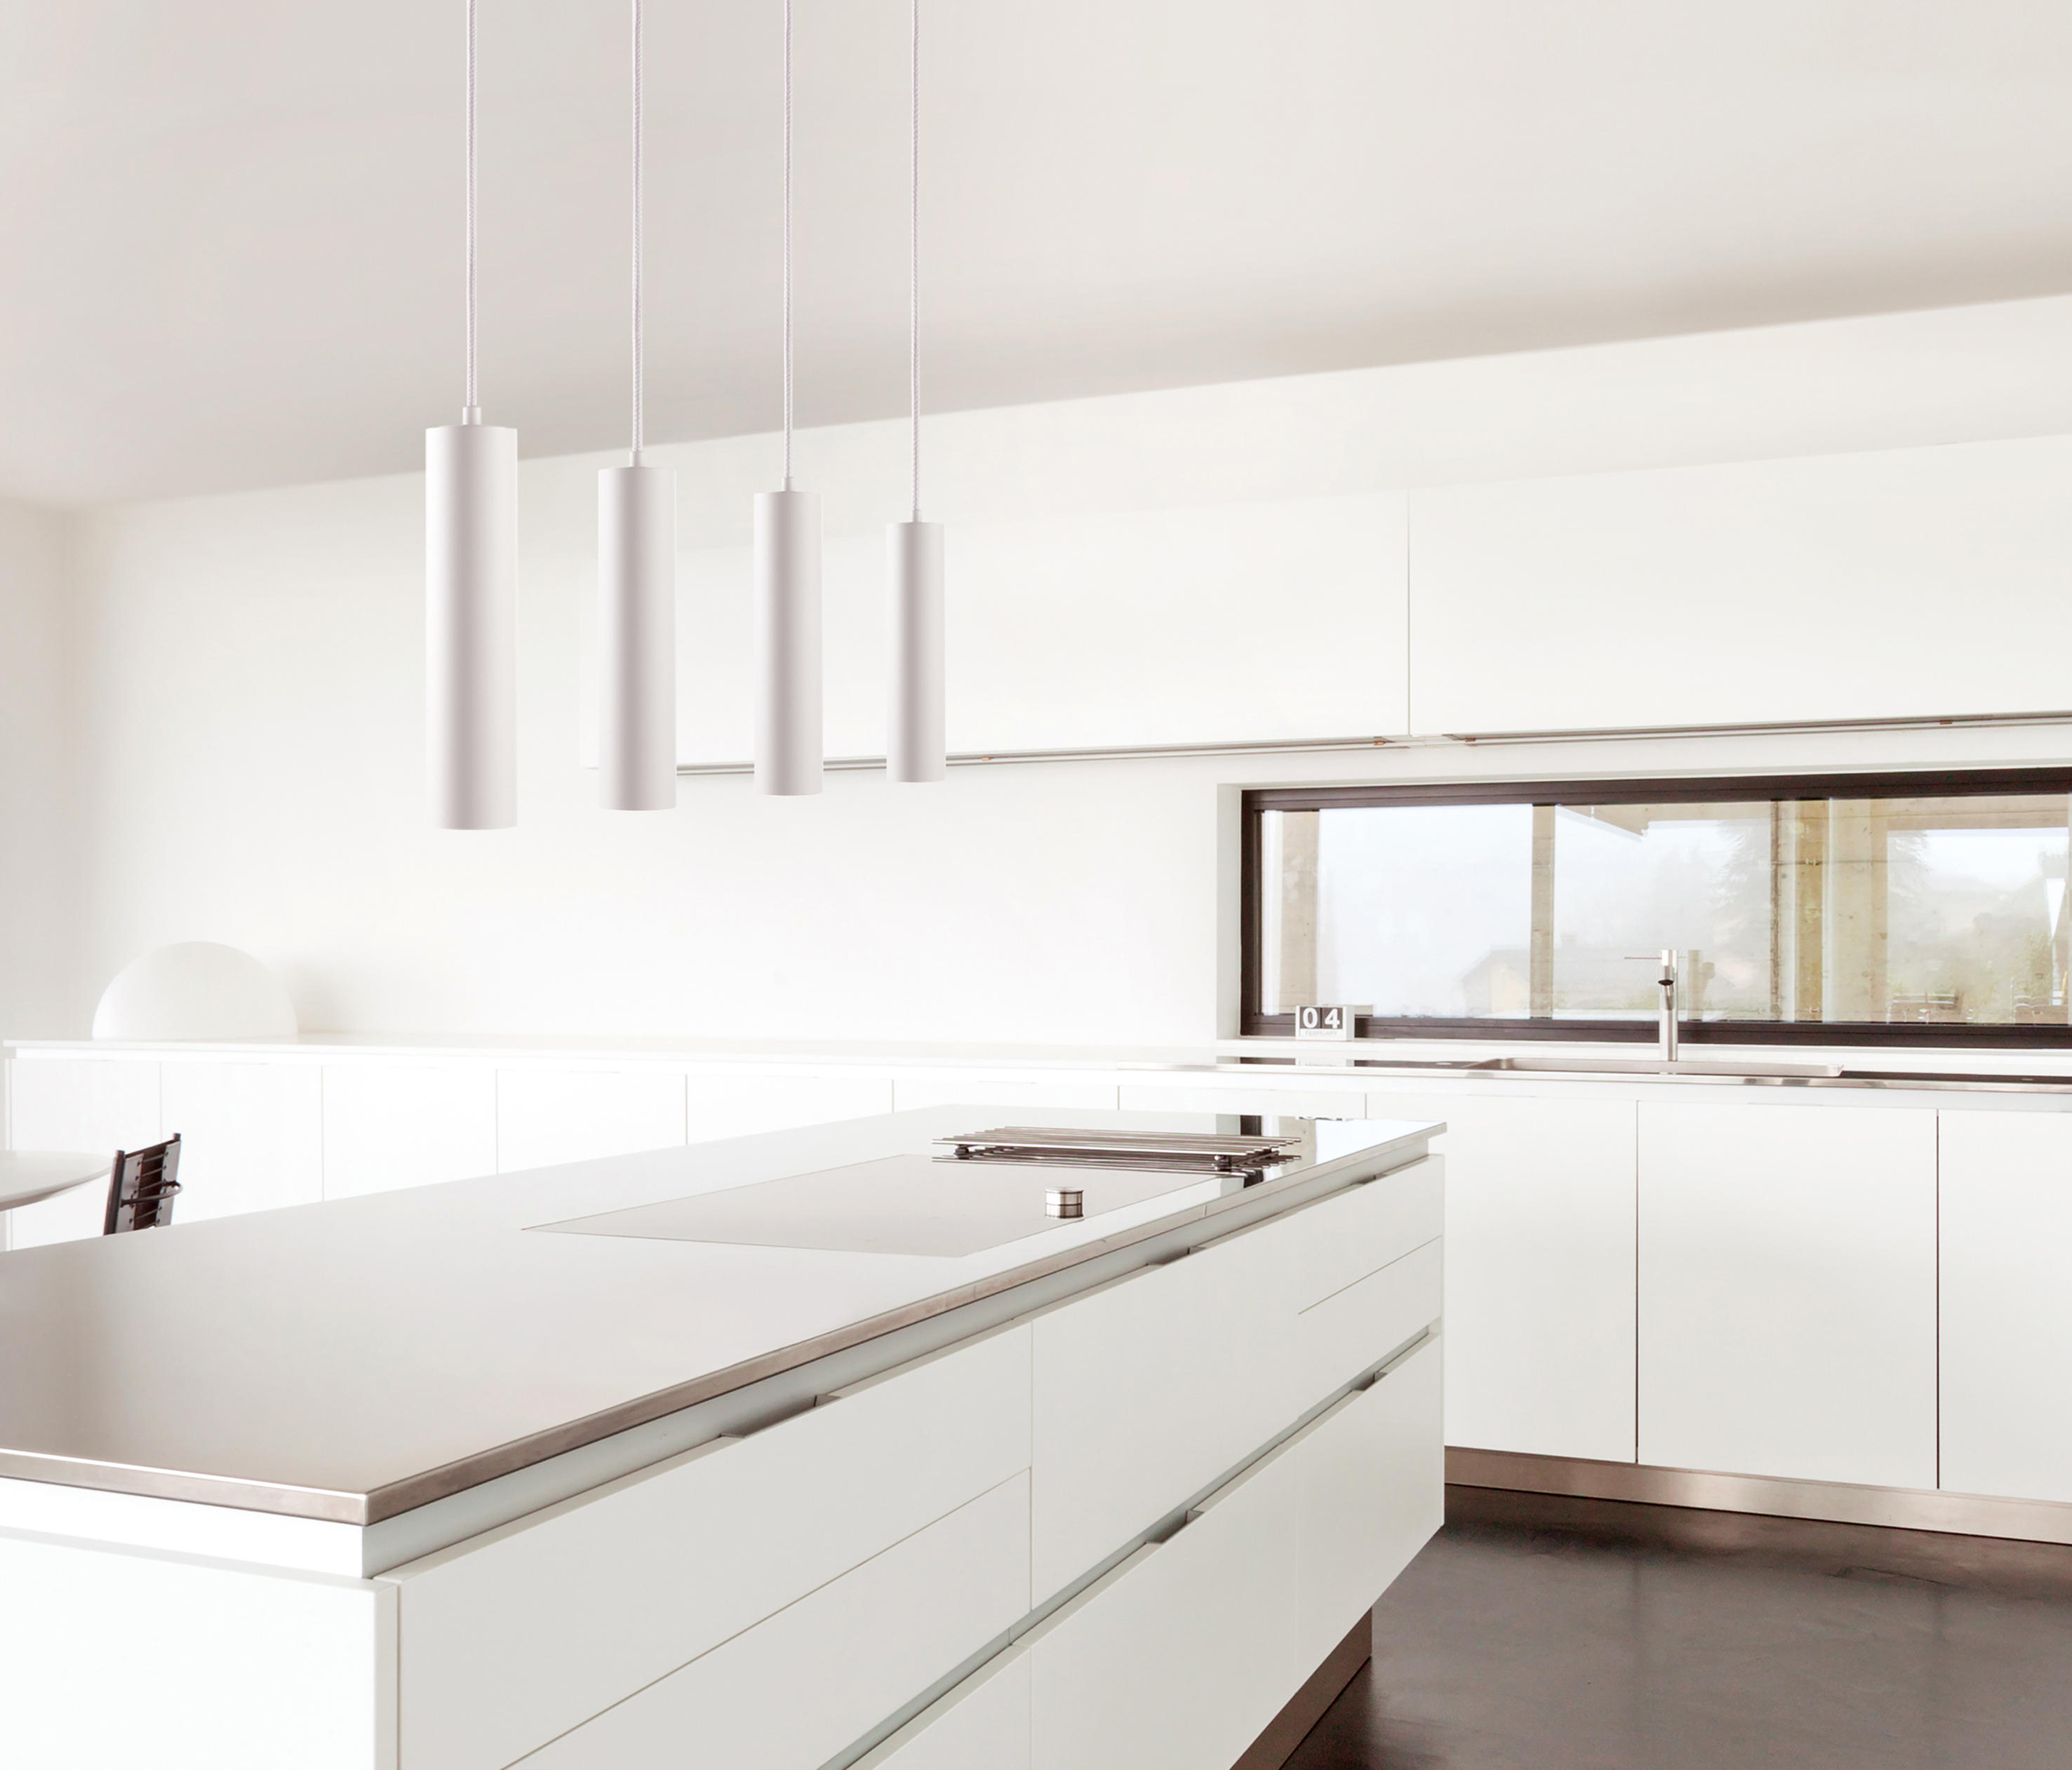 The Living Room W1: ZERO S1 - Suspended Lights From Light-Point